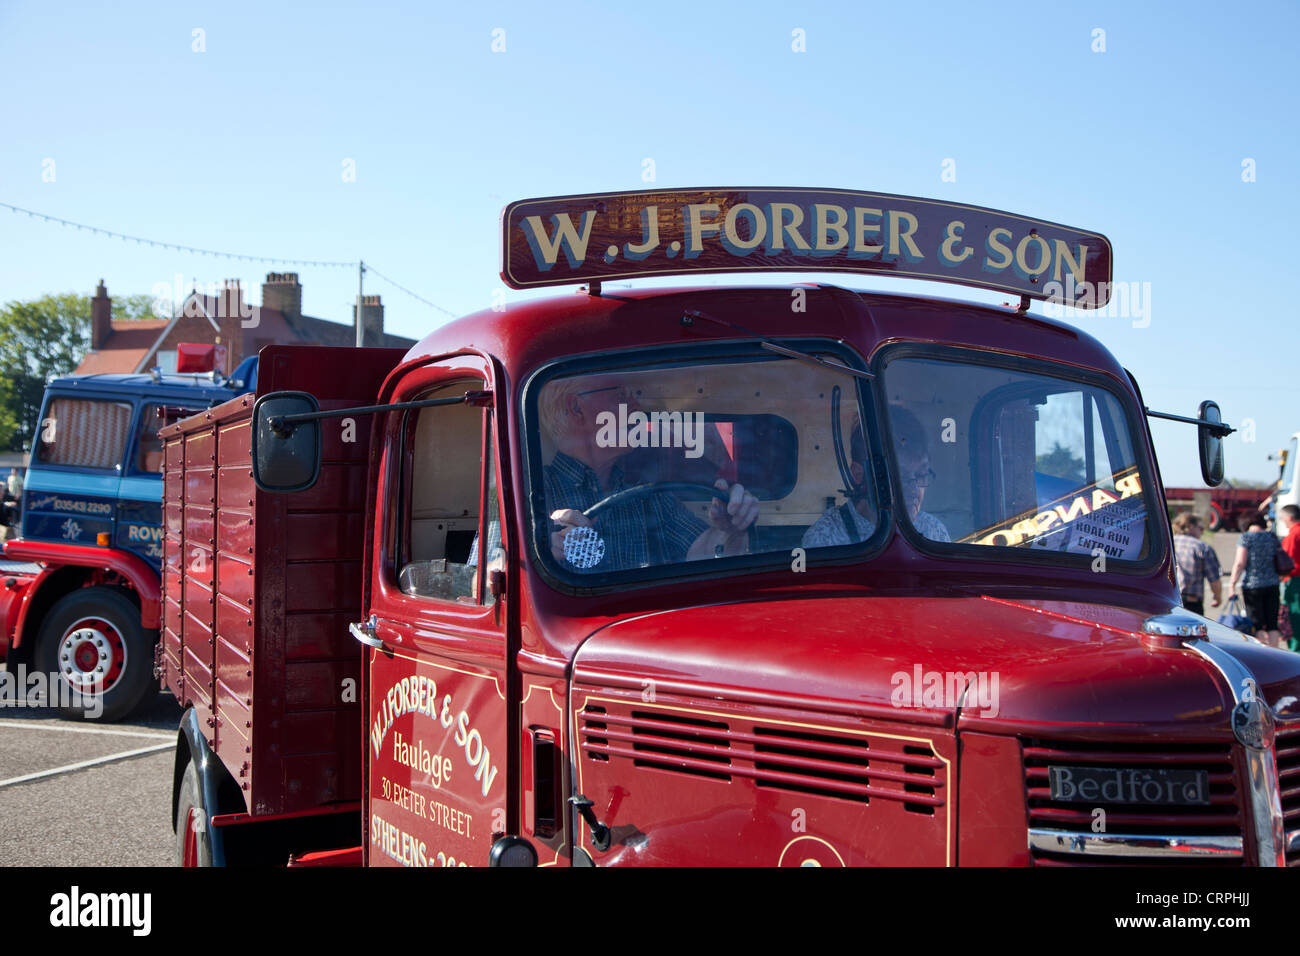 1946 Bedford OST with W. J Forber & Son livery - Stock Image